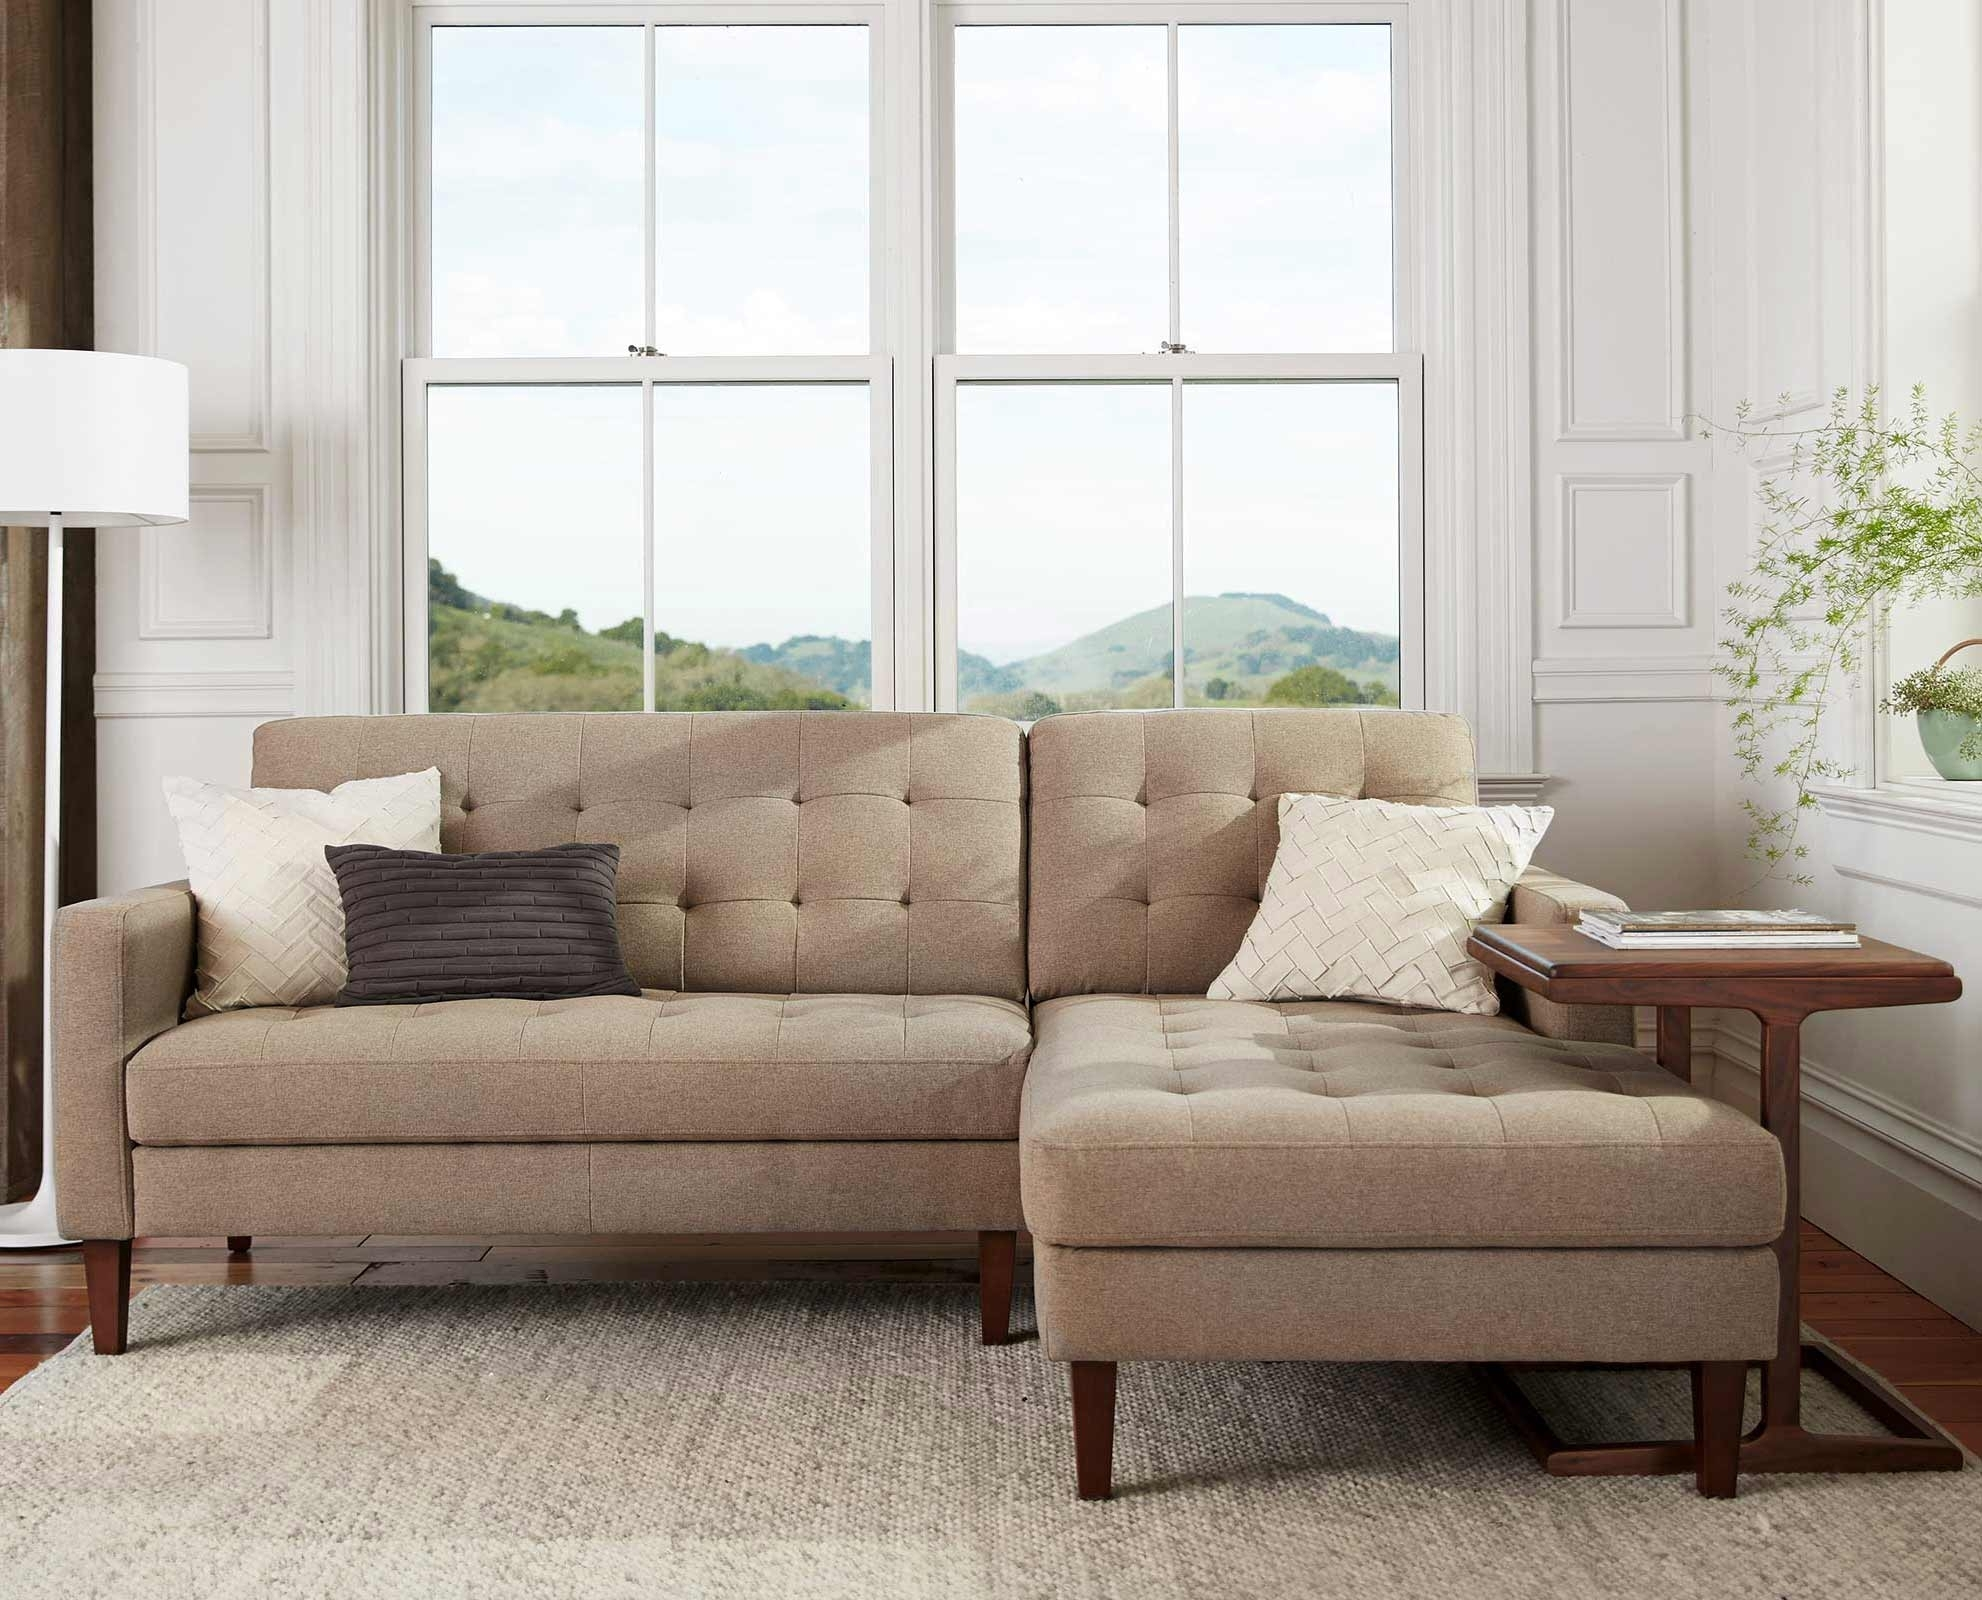 Scandinavian Designs – Create A Relaxing Aesthetic With The Camilla Inside Dania Sectional Sofas (View 4 of 10)